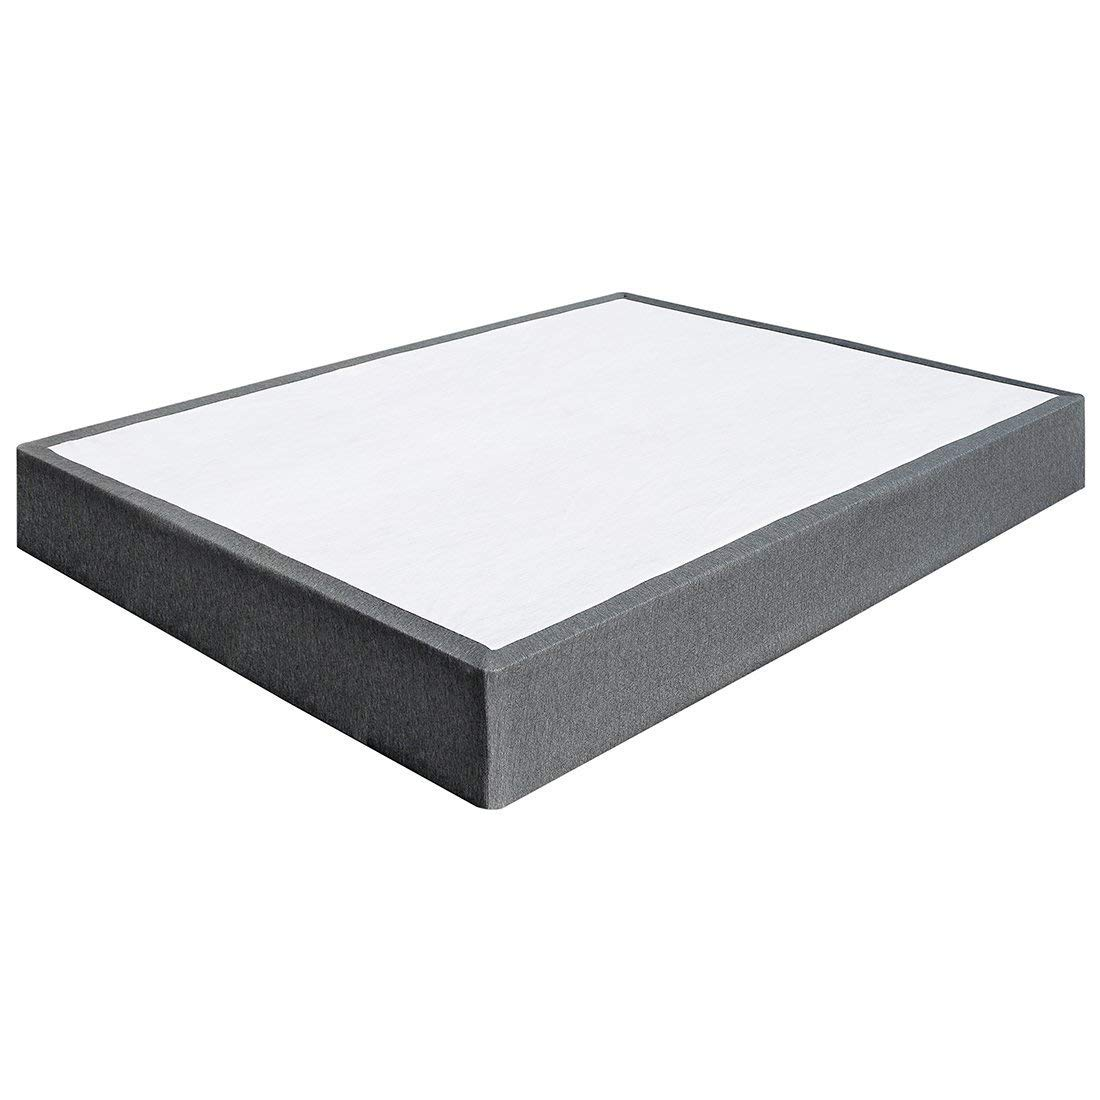 TATAGO 3000lbs Max Weight Capacity 9 Inch Heavy Duty Metal Box Spring Mattress Foundation, Extra-Strong Support & Non-Slip, No Noise, Easy Assembly (Queen)